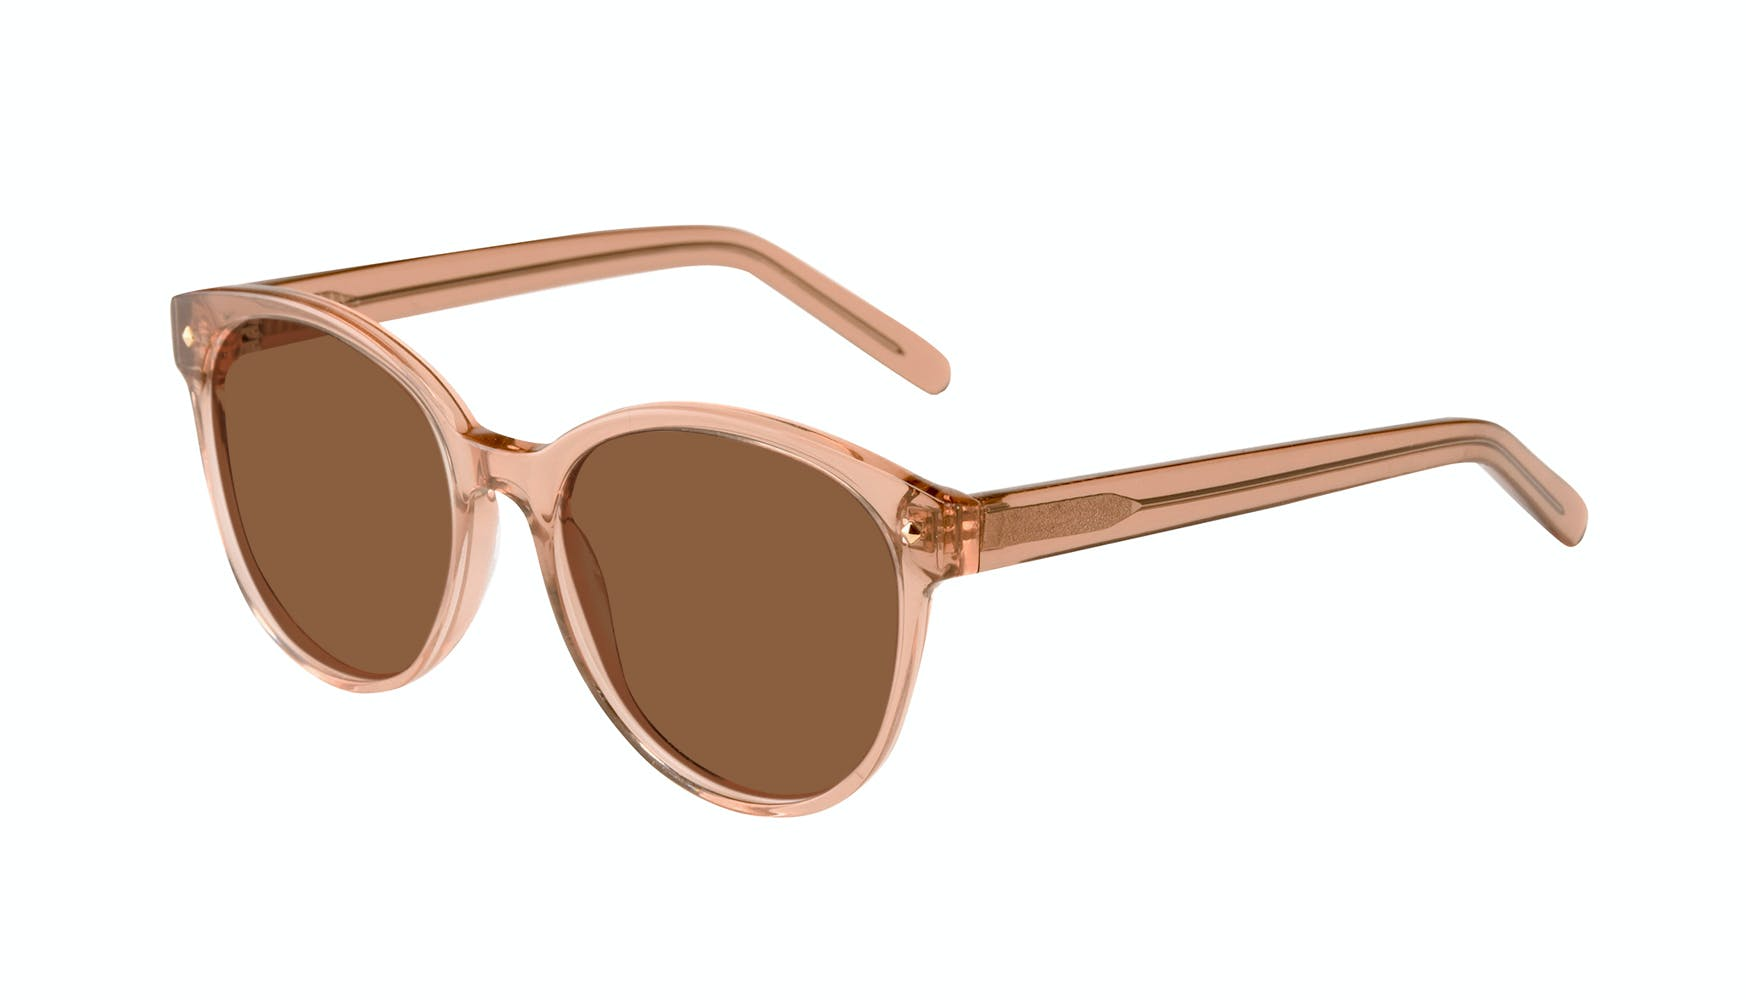 Affordable Fashion Glasses Round Sunglasses Women Eclipse Toffee Tilt